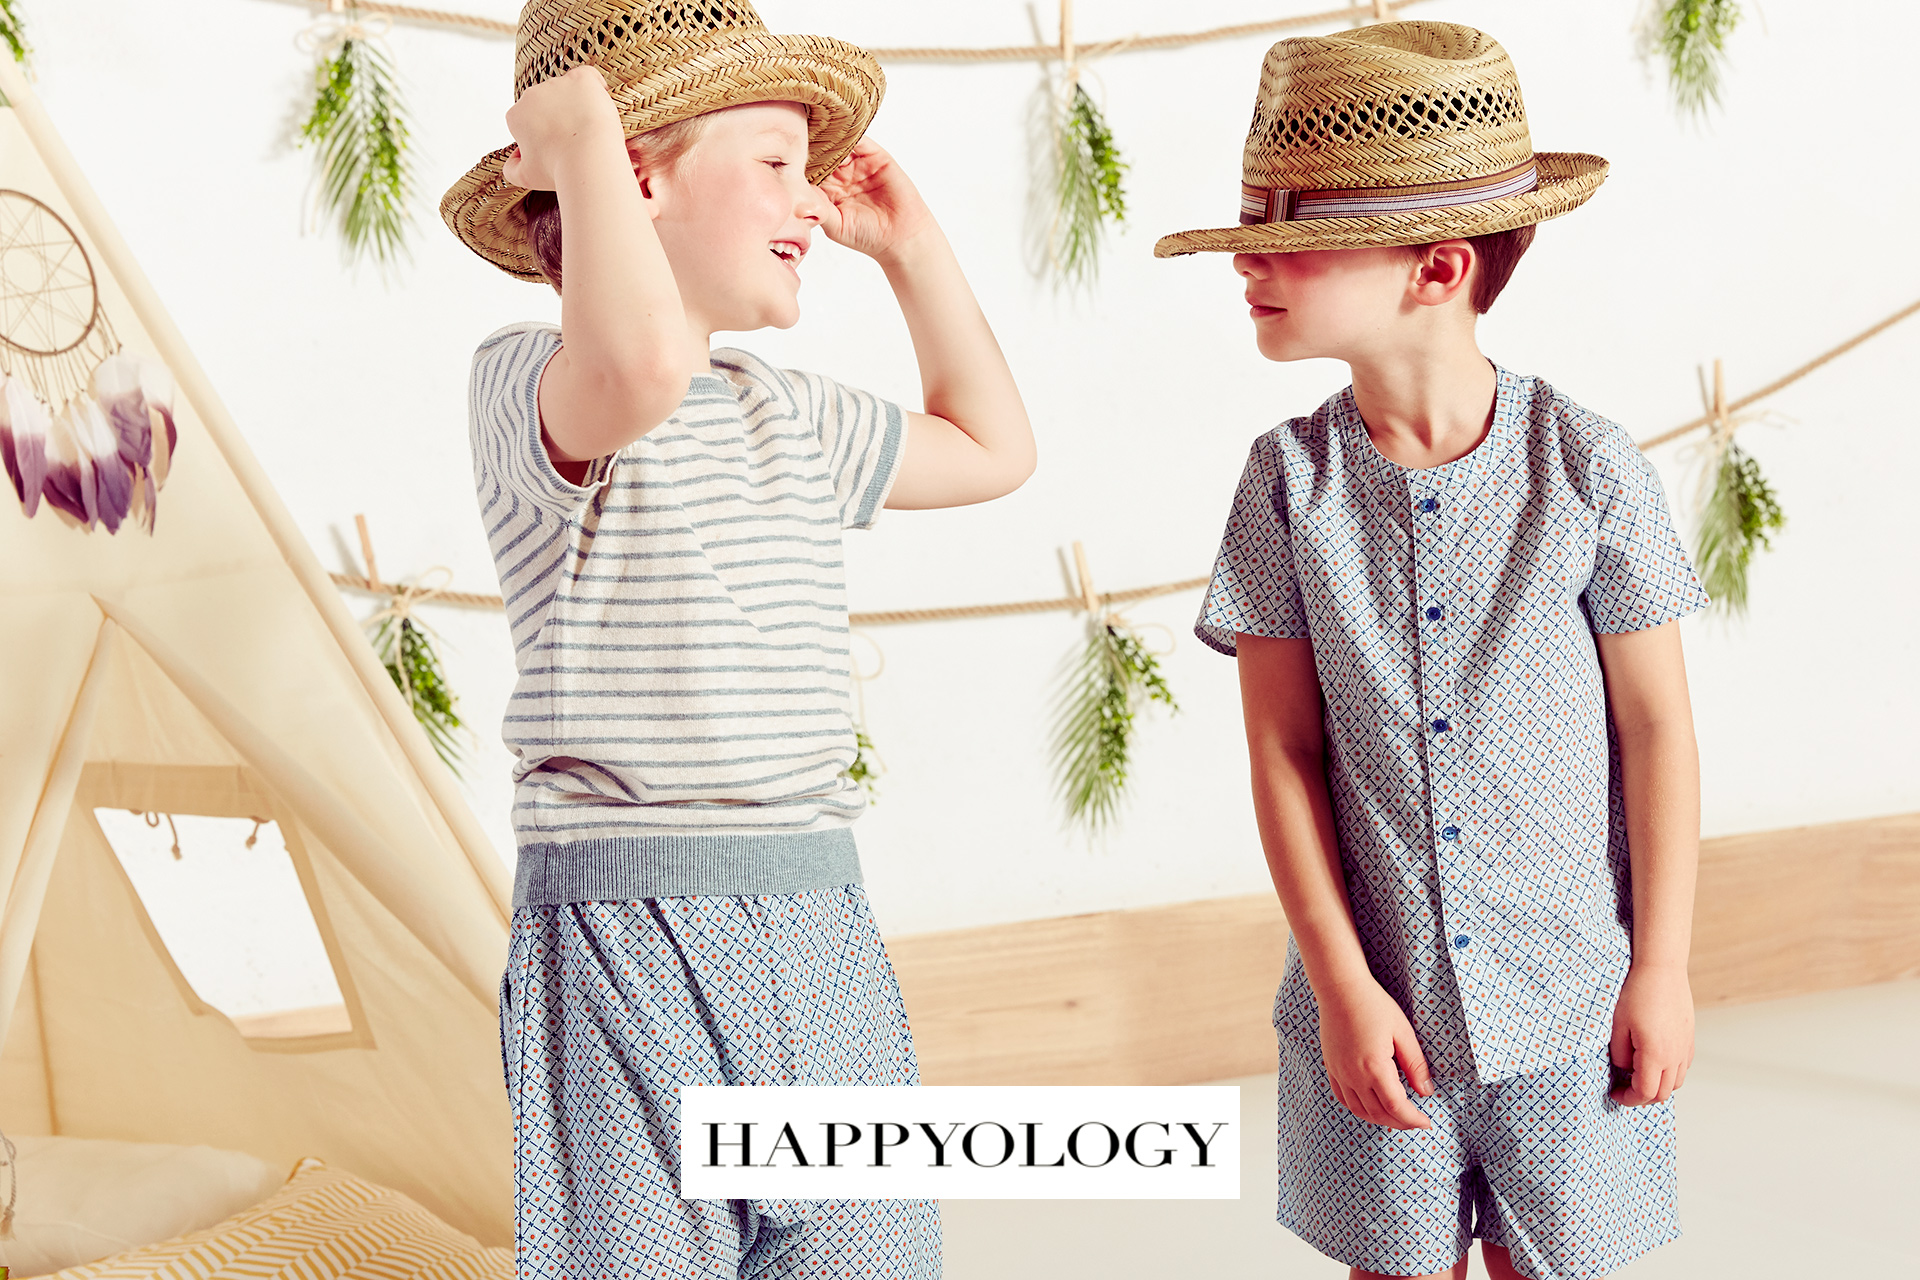 Happyology kids fashion campaign SS 2